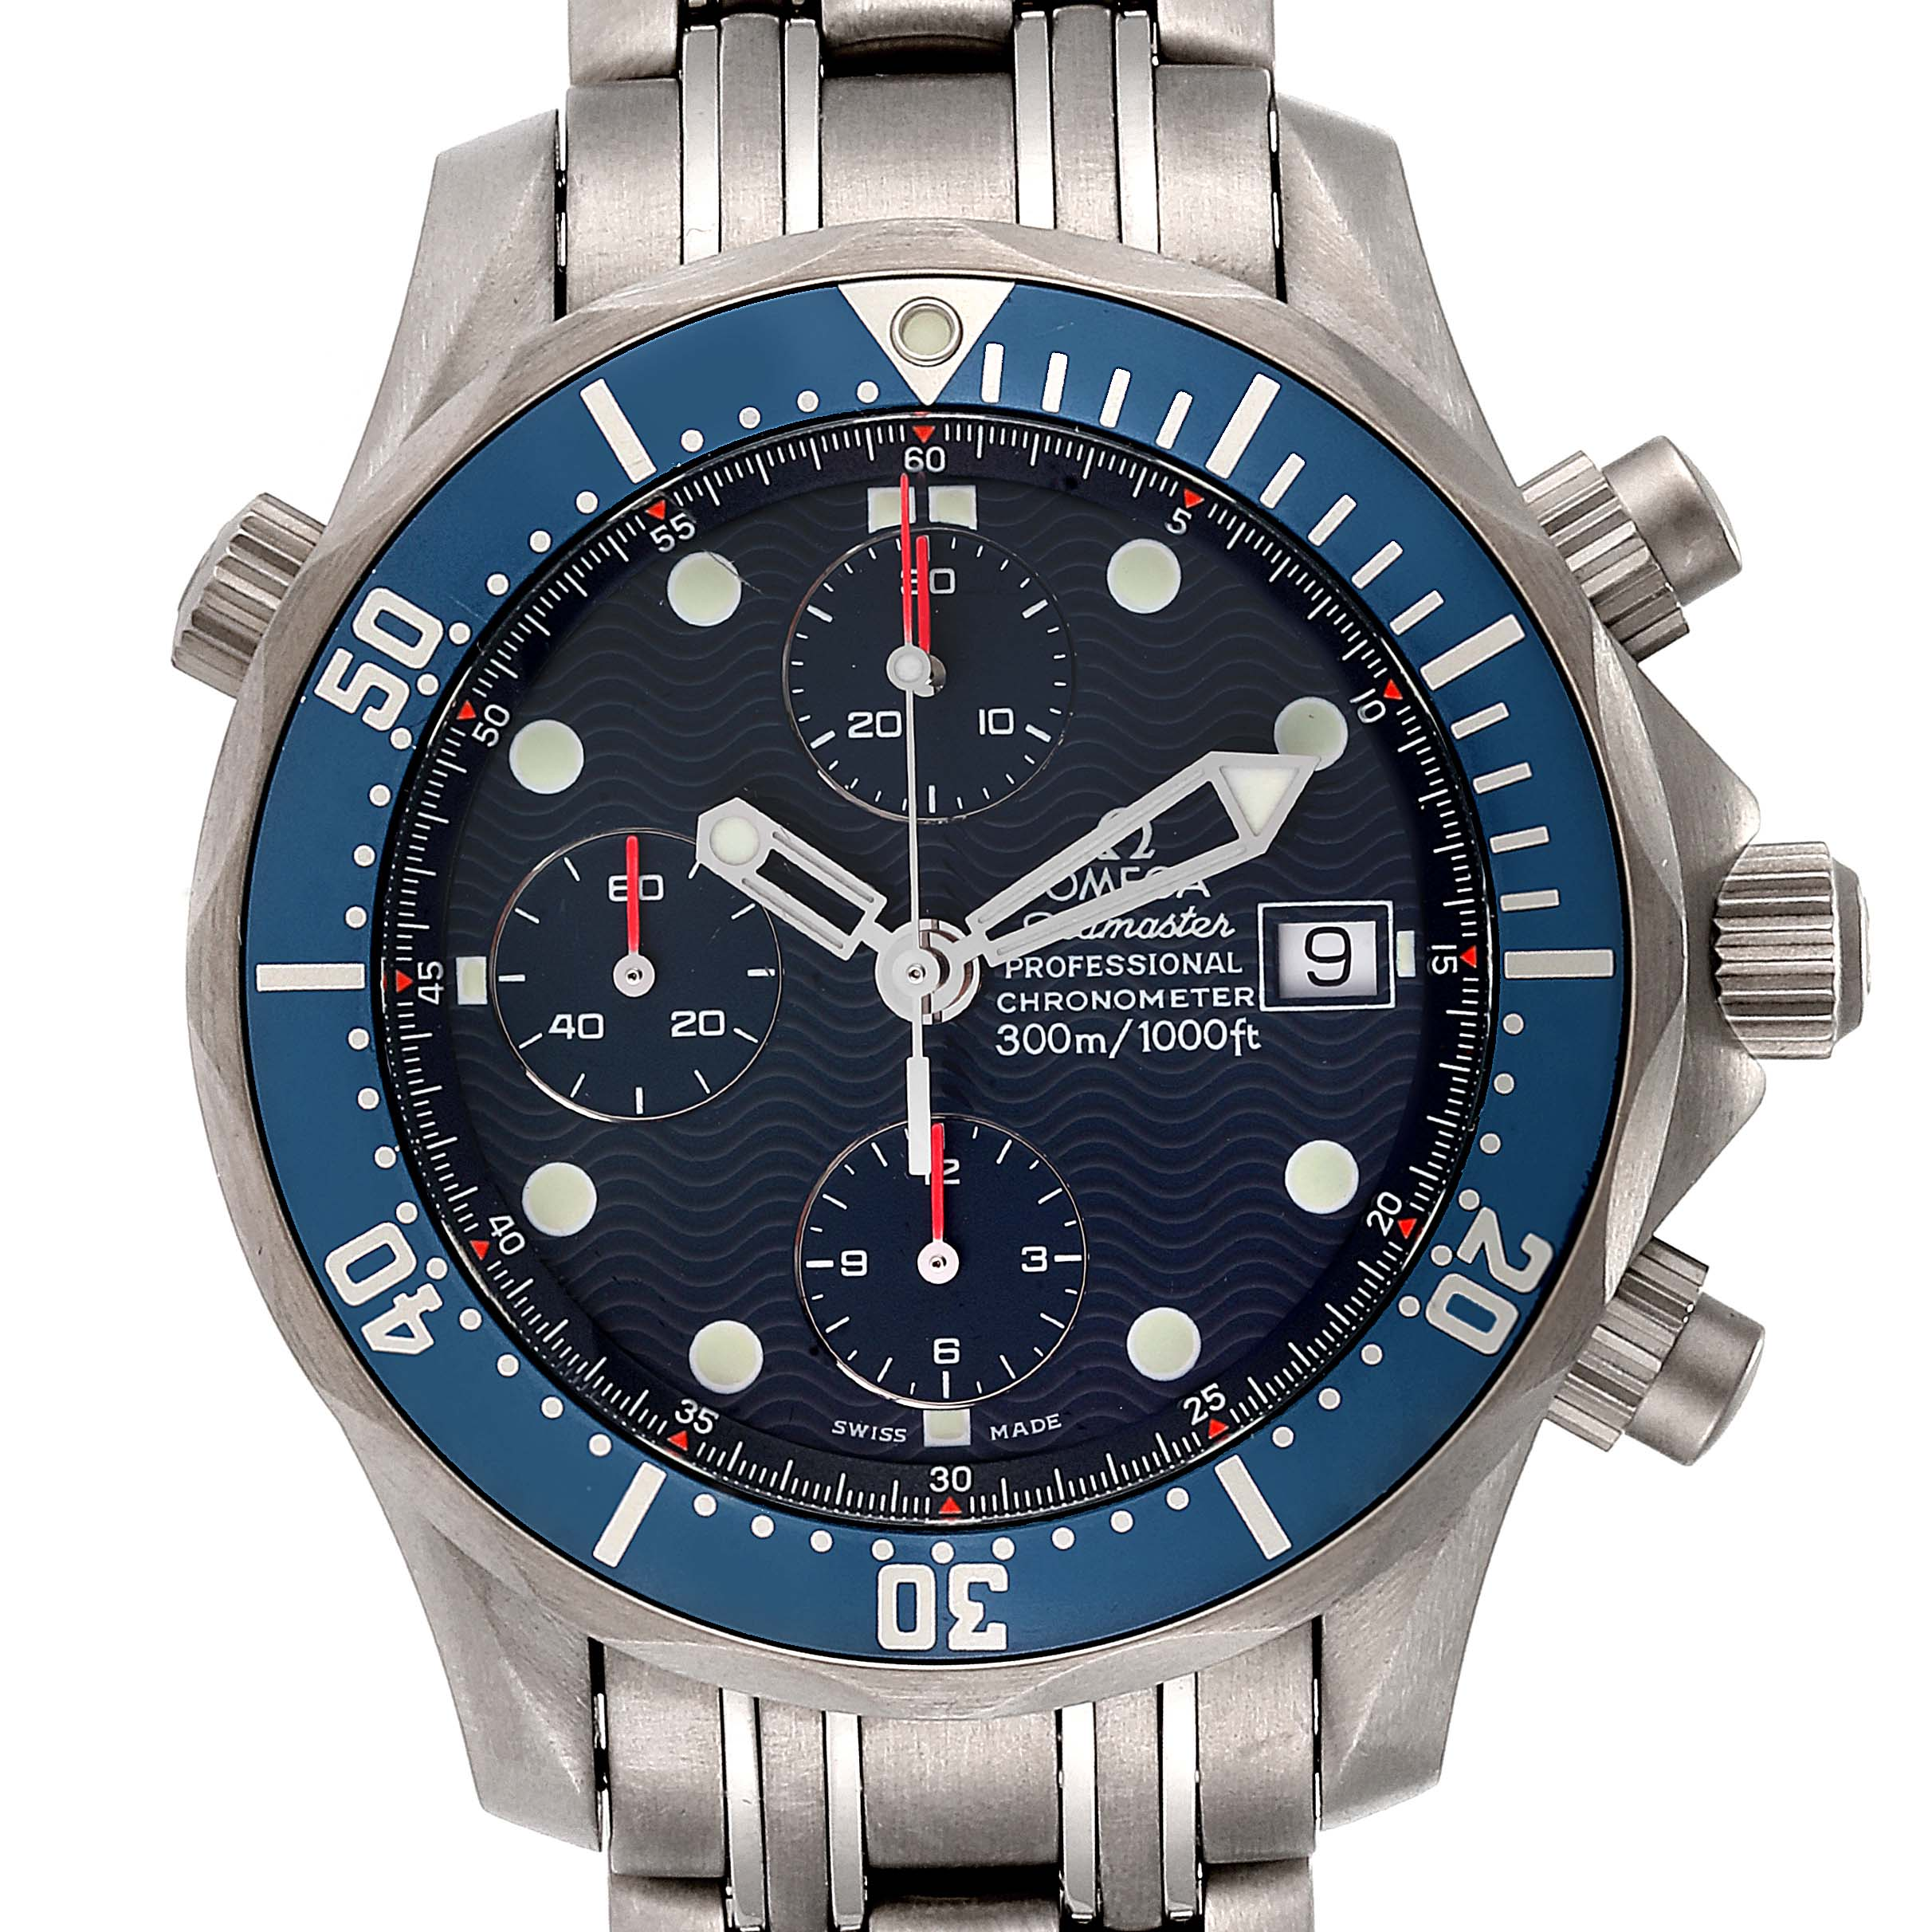 Omega Seamaster Chrono Diver Blue Dial Titanium Mens Watch 2298.80.00